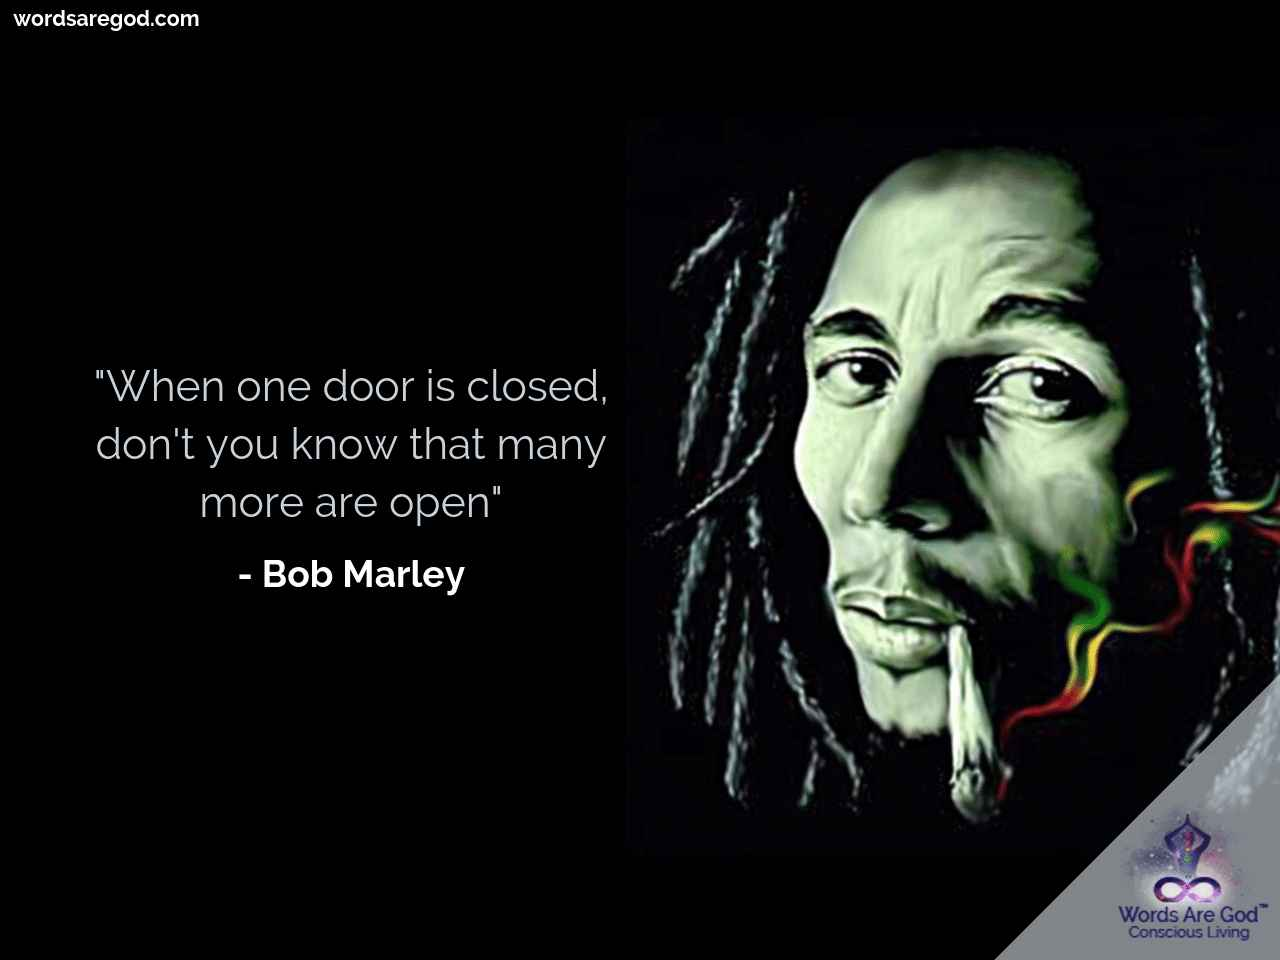 When one door is closed, don't you know that many more are open. – Bob Marley [1280X960]